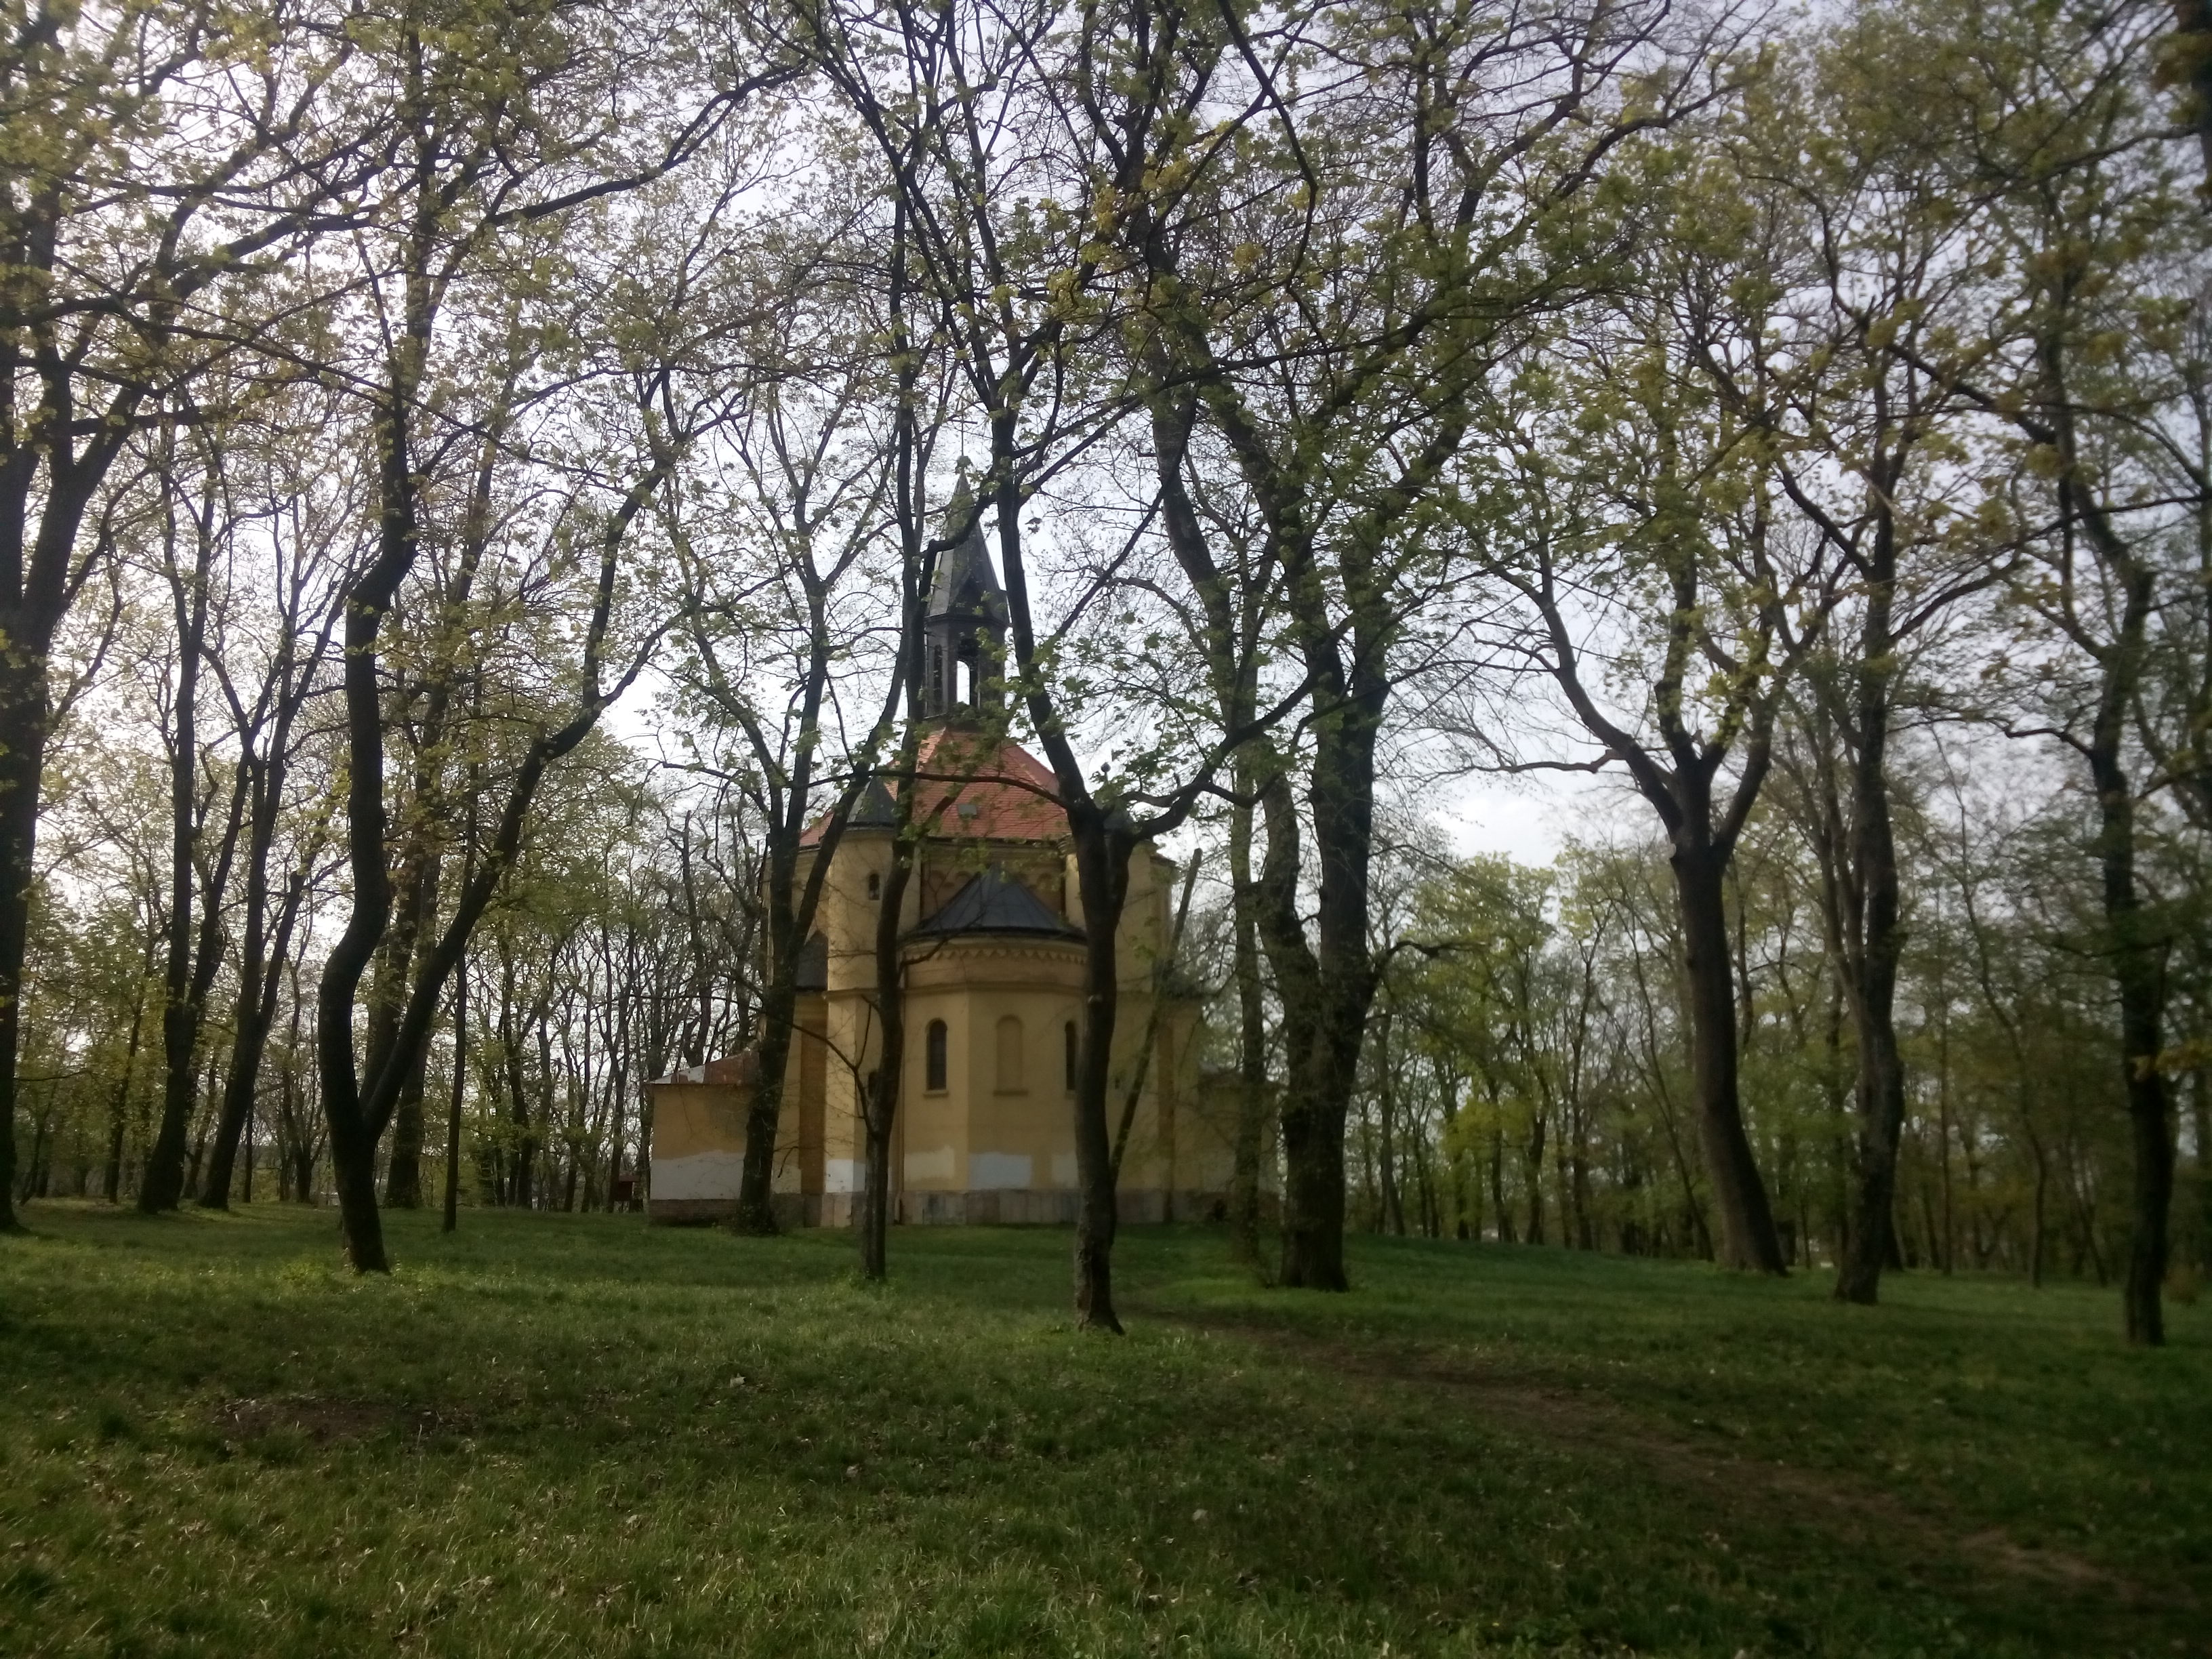 A yellow brick round church behind some trees